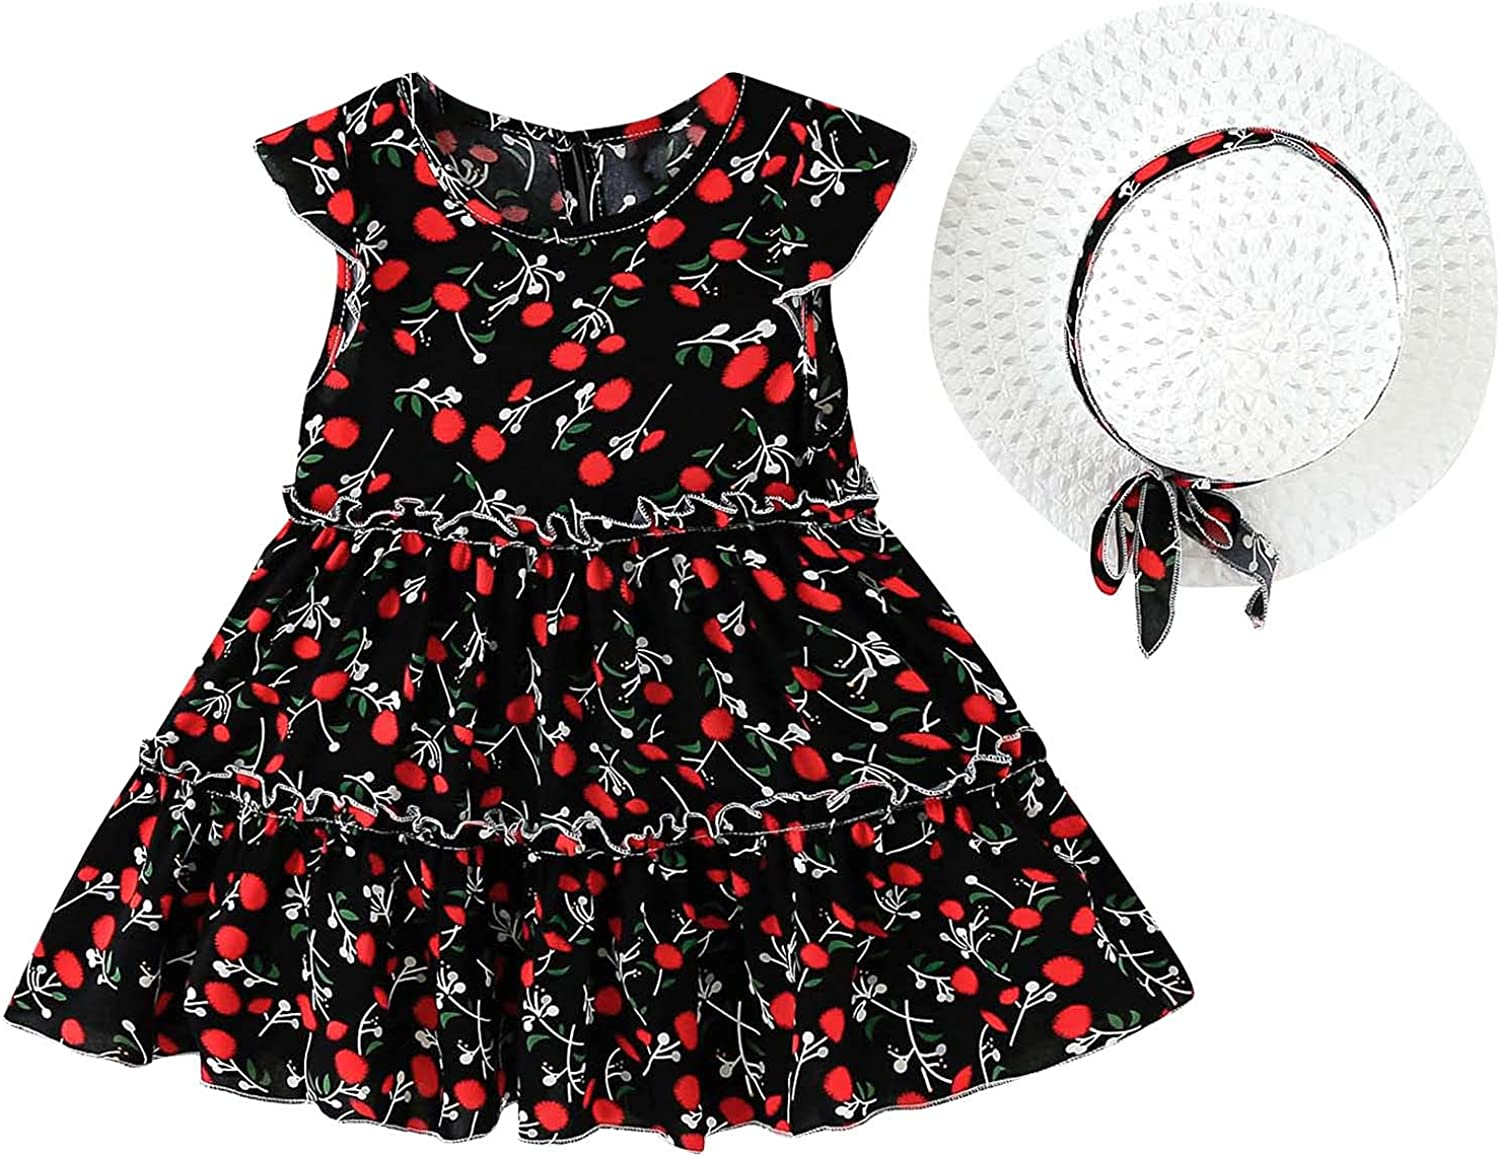 Toddler Kids Baby Girls Dress Summer Vest Small Floral Sweet Cake Skirt + Hat Holiday Outfits Set